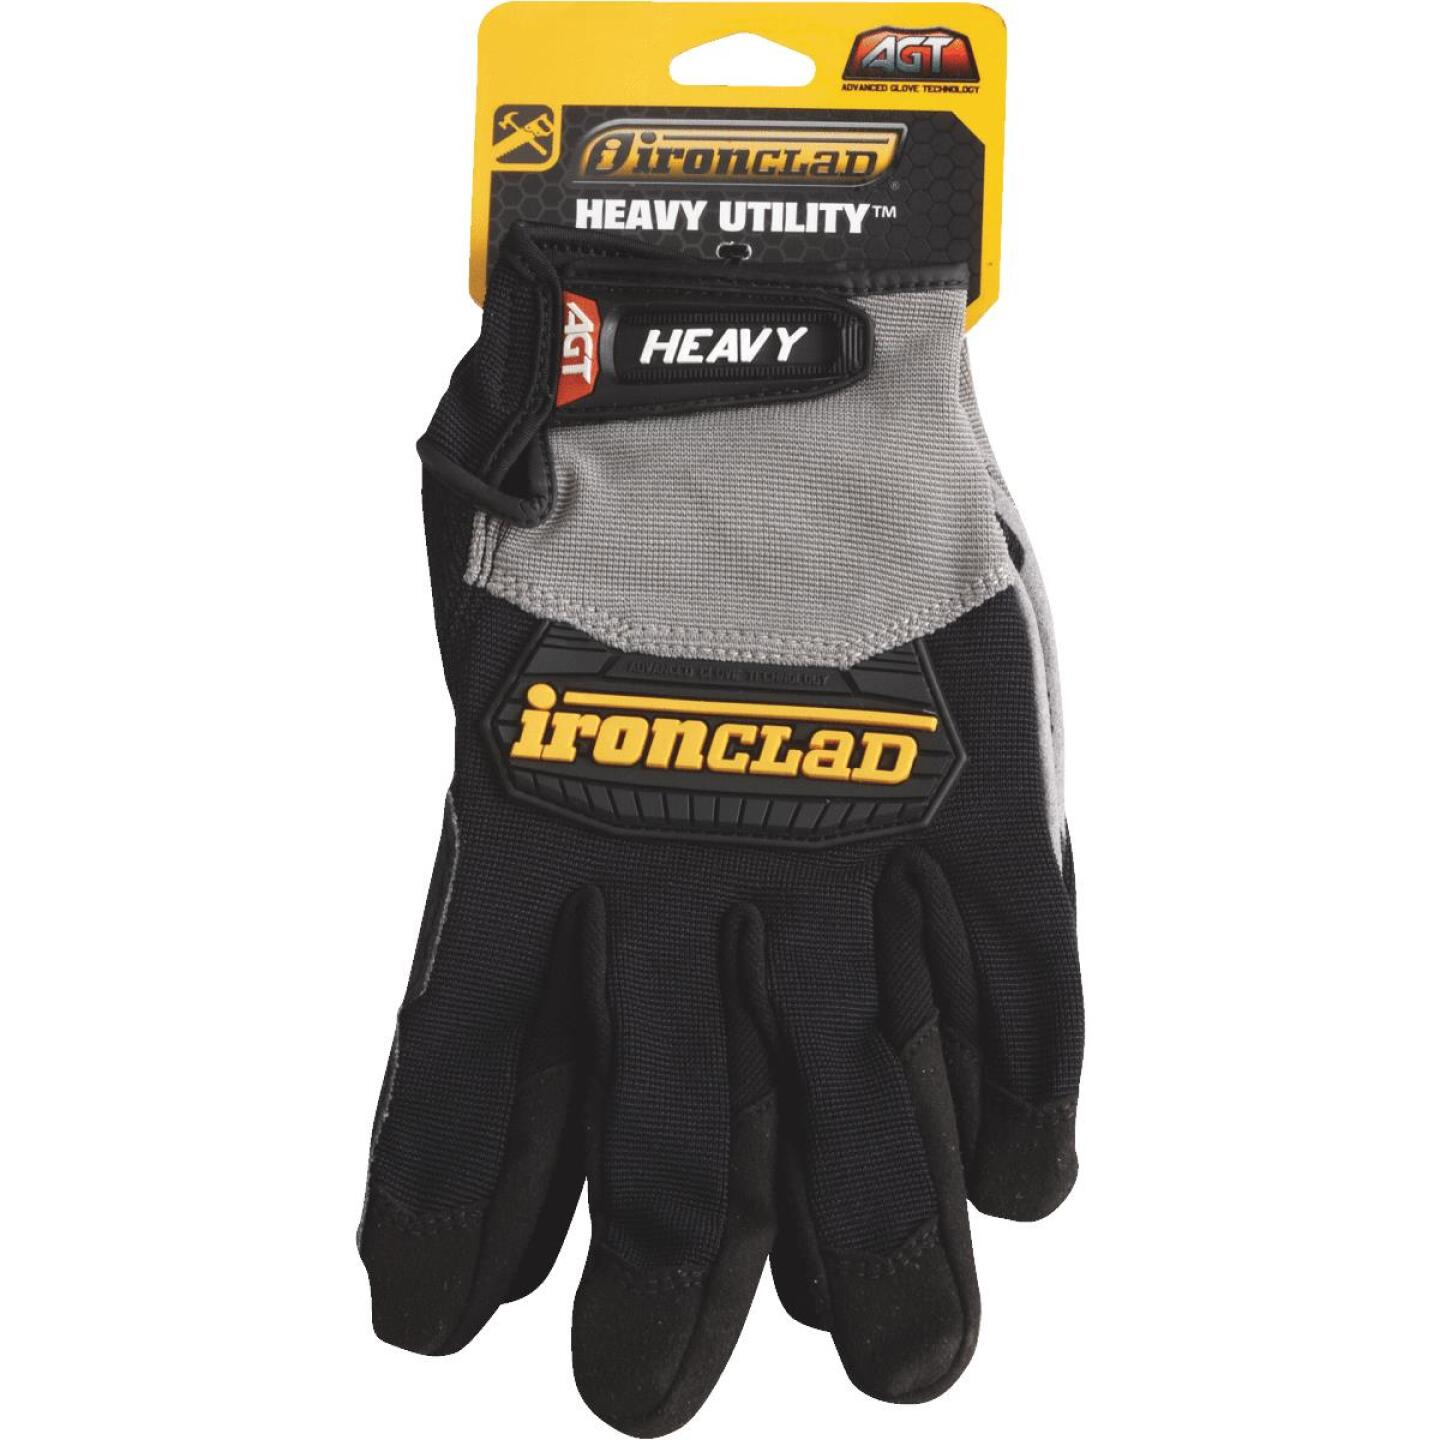 Ironclad Heavy Utility Men's Medium Synthetic Leather High Performance Glove Image 3